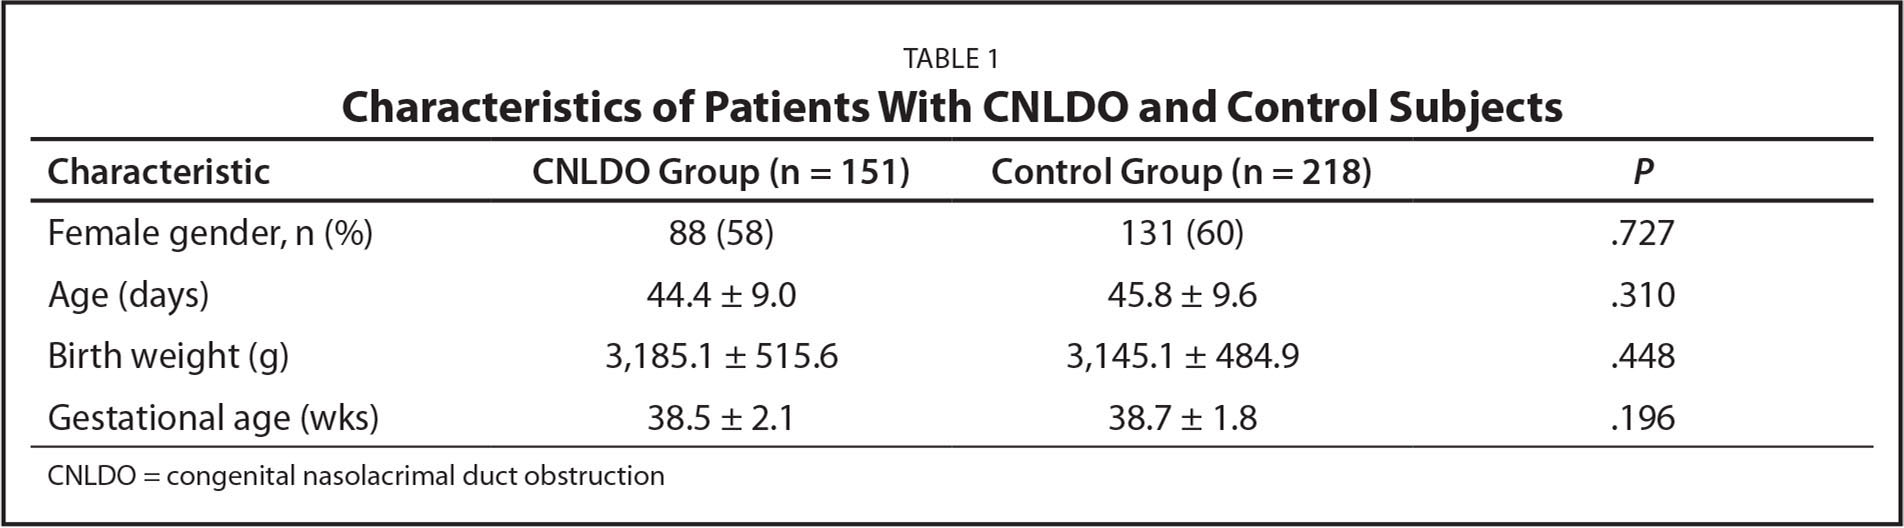 Characteristics of Patients With CNLDO and Control Subjects